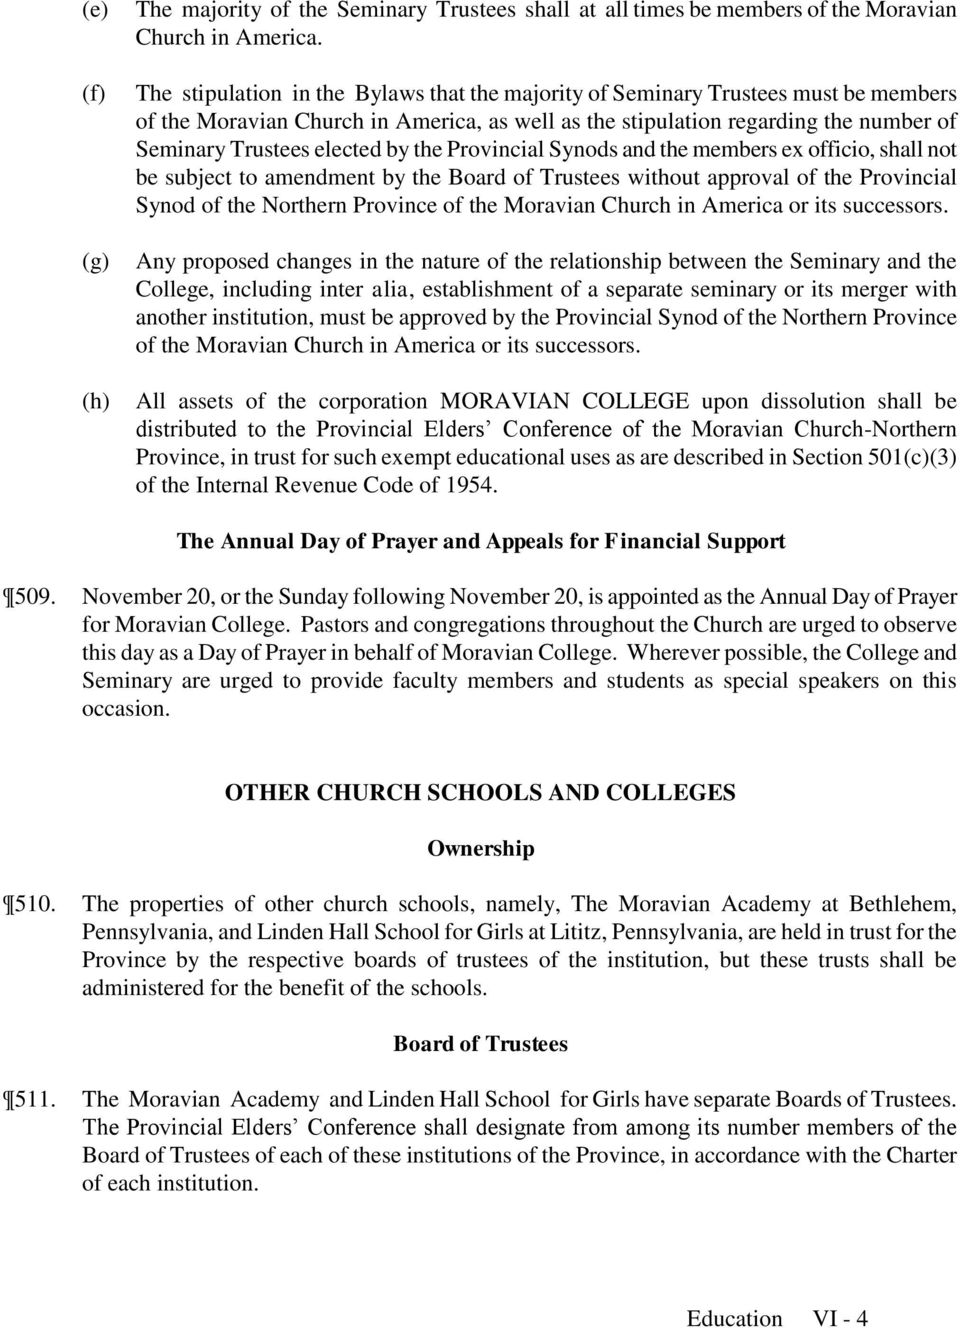 the Provincial Synods and the members ex officio, shall not be subject to amendment by the Board of Trustees without approval of the Provincial Synod of the Northern Province of the Moravian Church